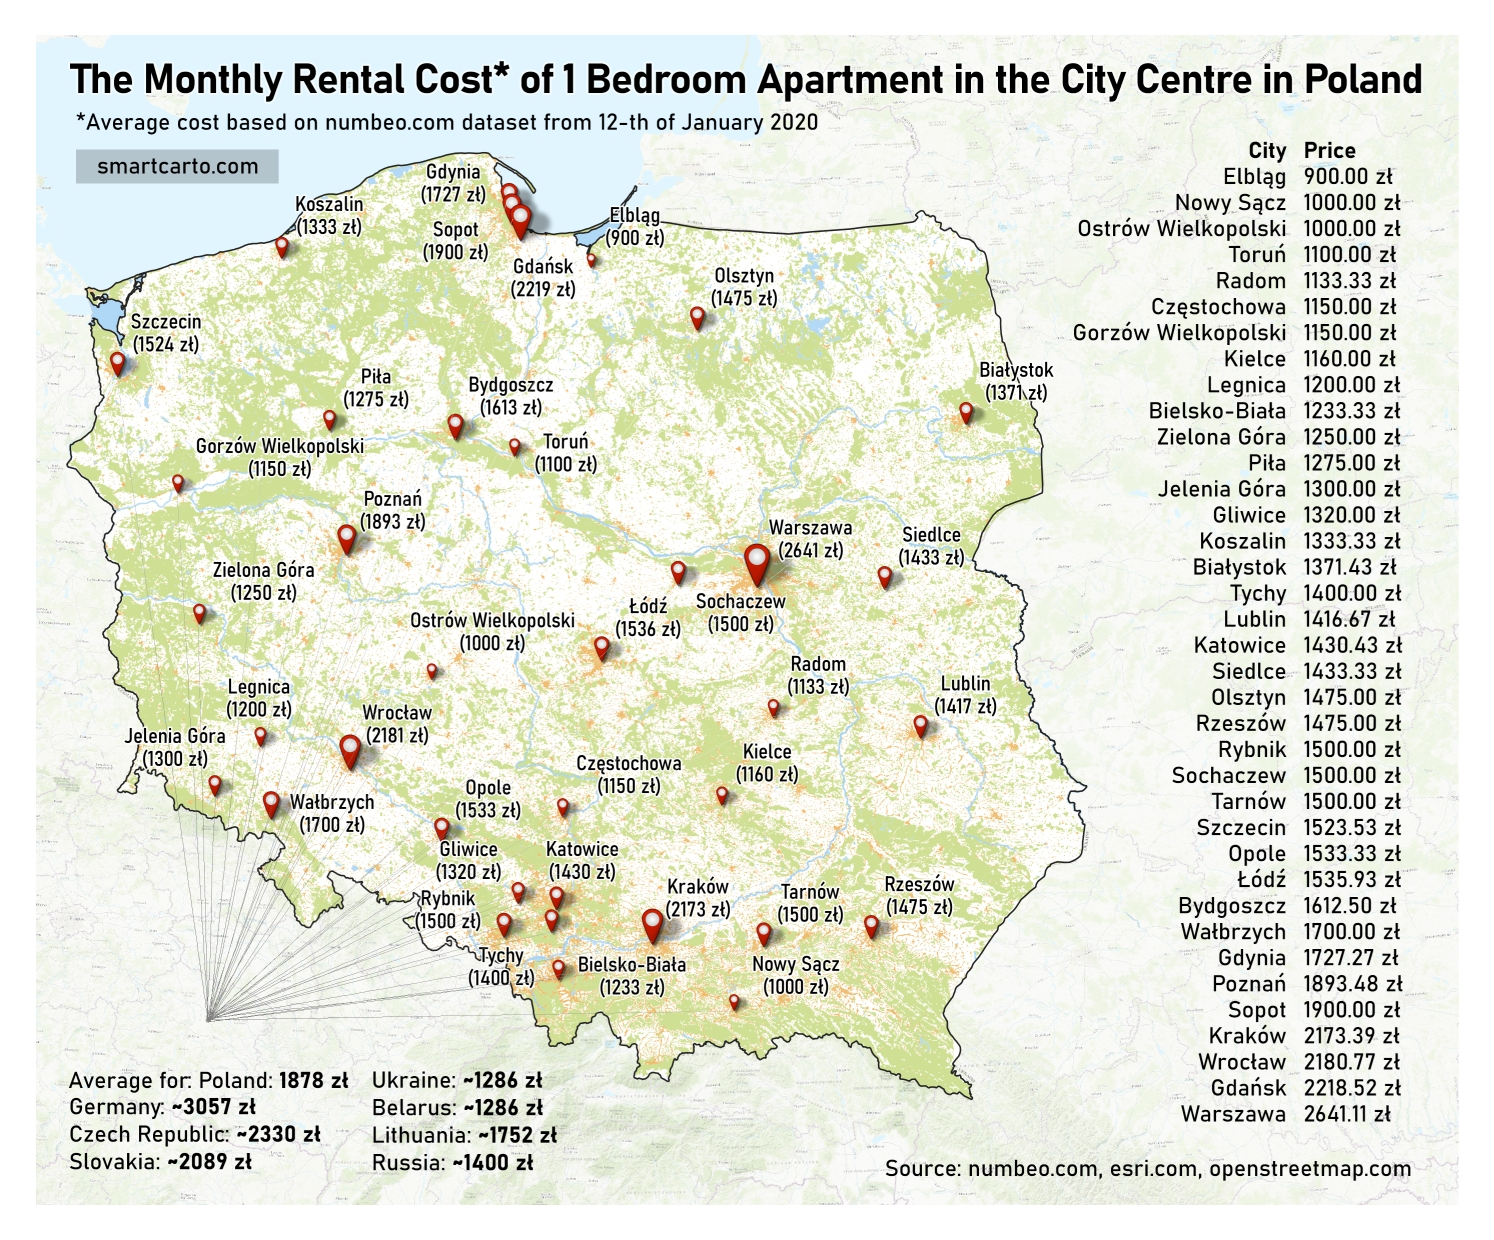 The Monthly Rental Cost of 1 Bedroom Apartment in the City Centre in Poland - dataset from 12th of January 2020